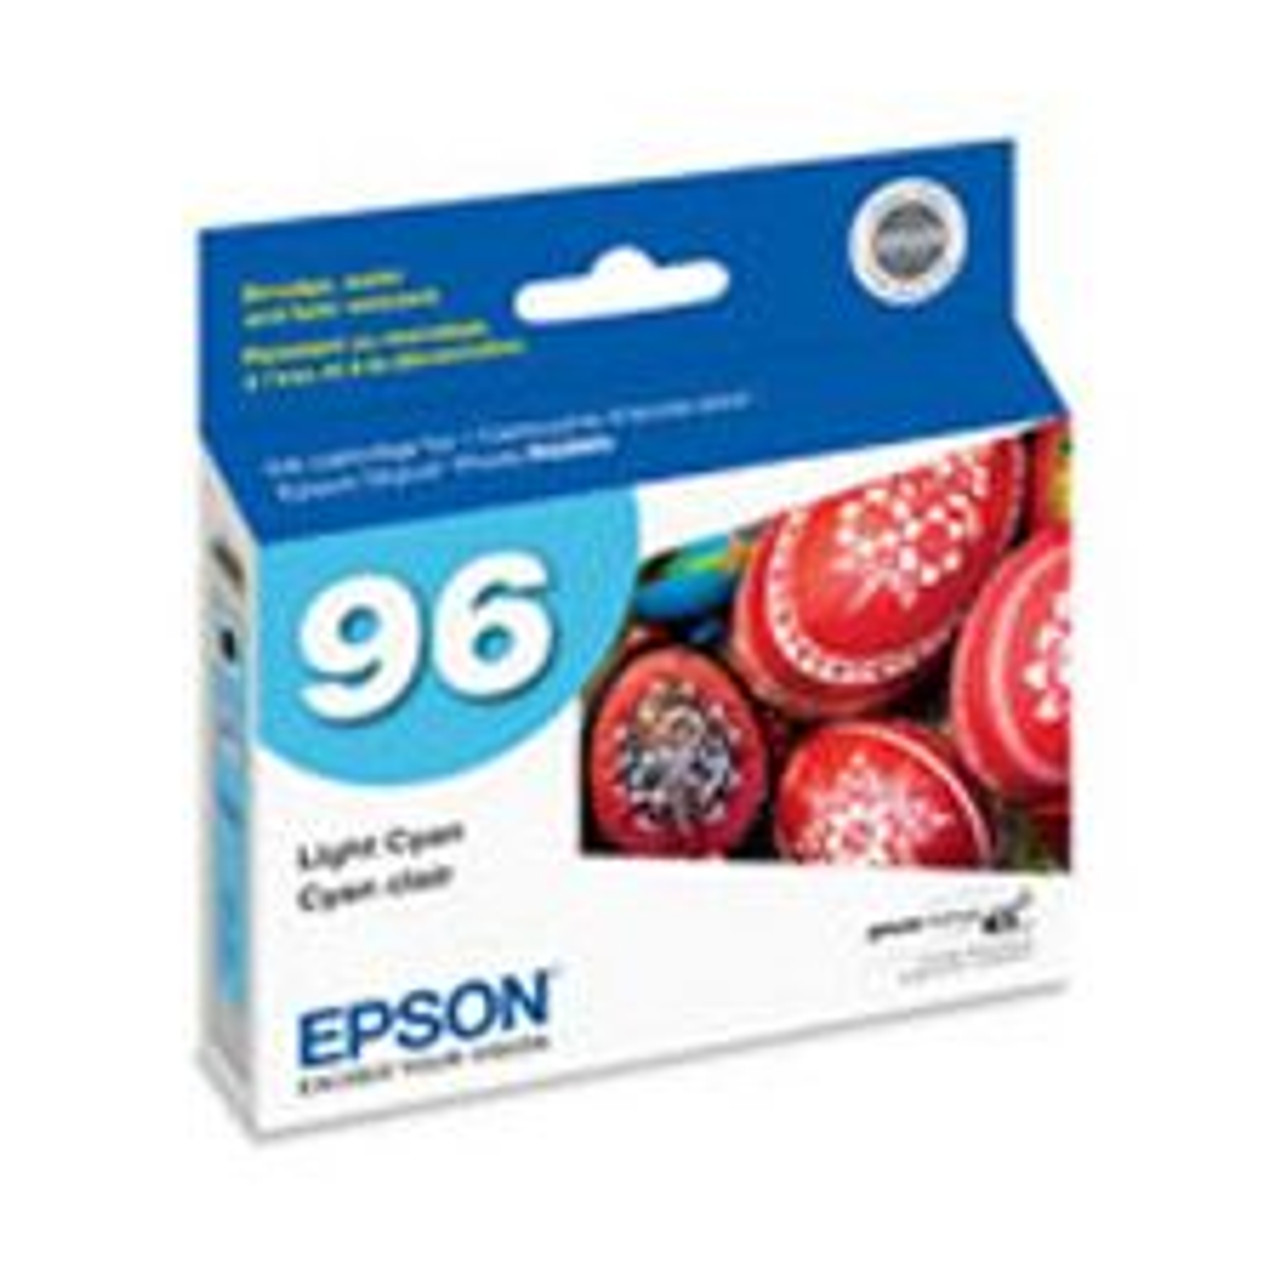 Image for Epson T0965 Light Cyan Ink Cartridge (T096590) CX Computer Superstore